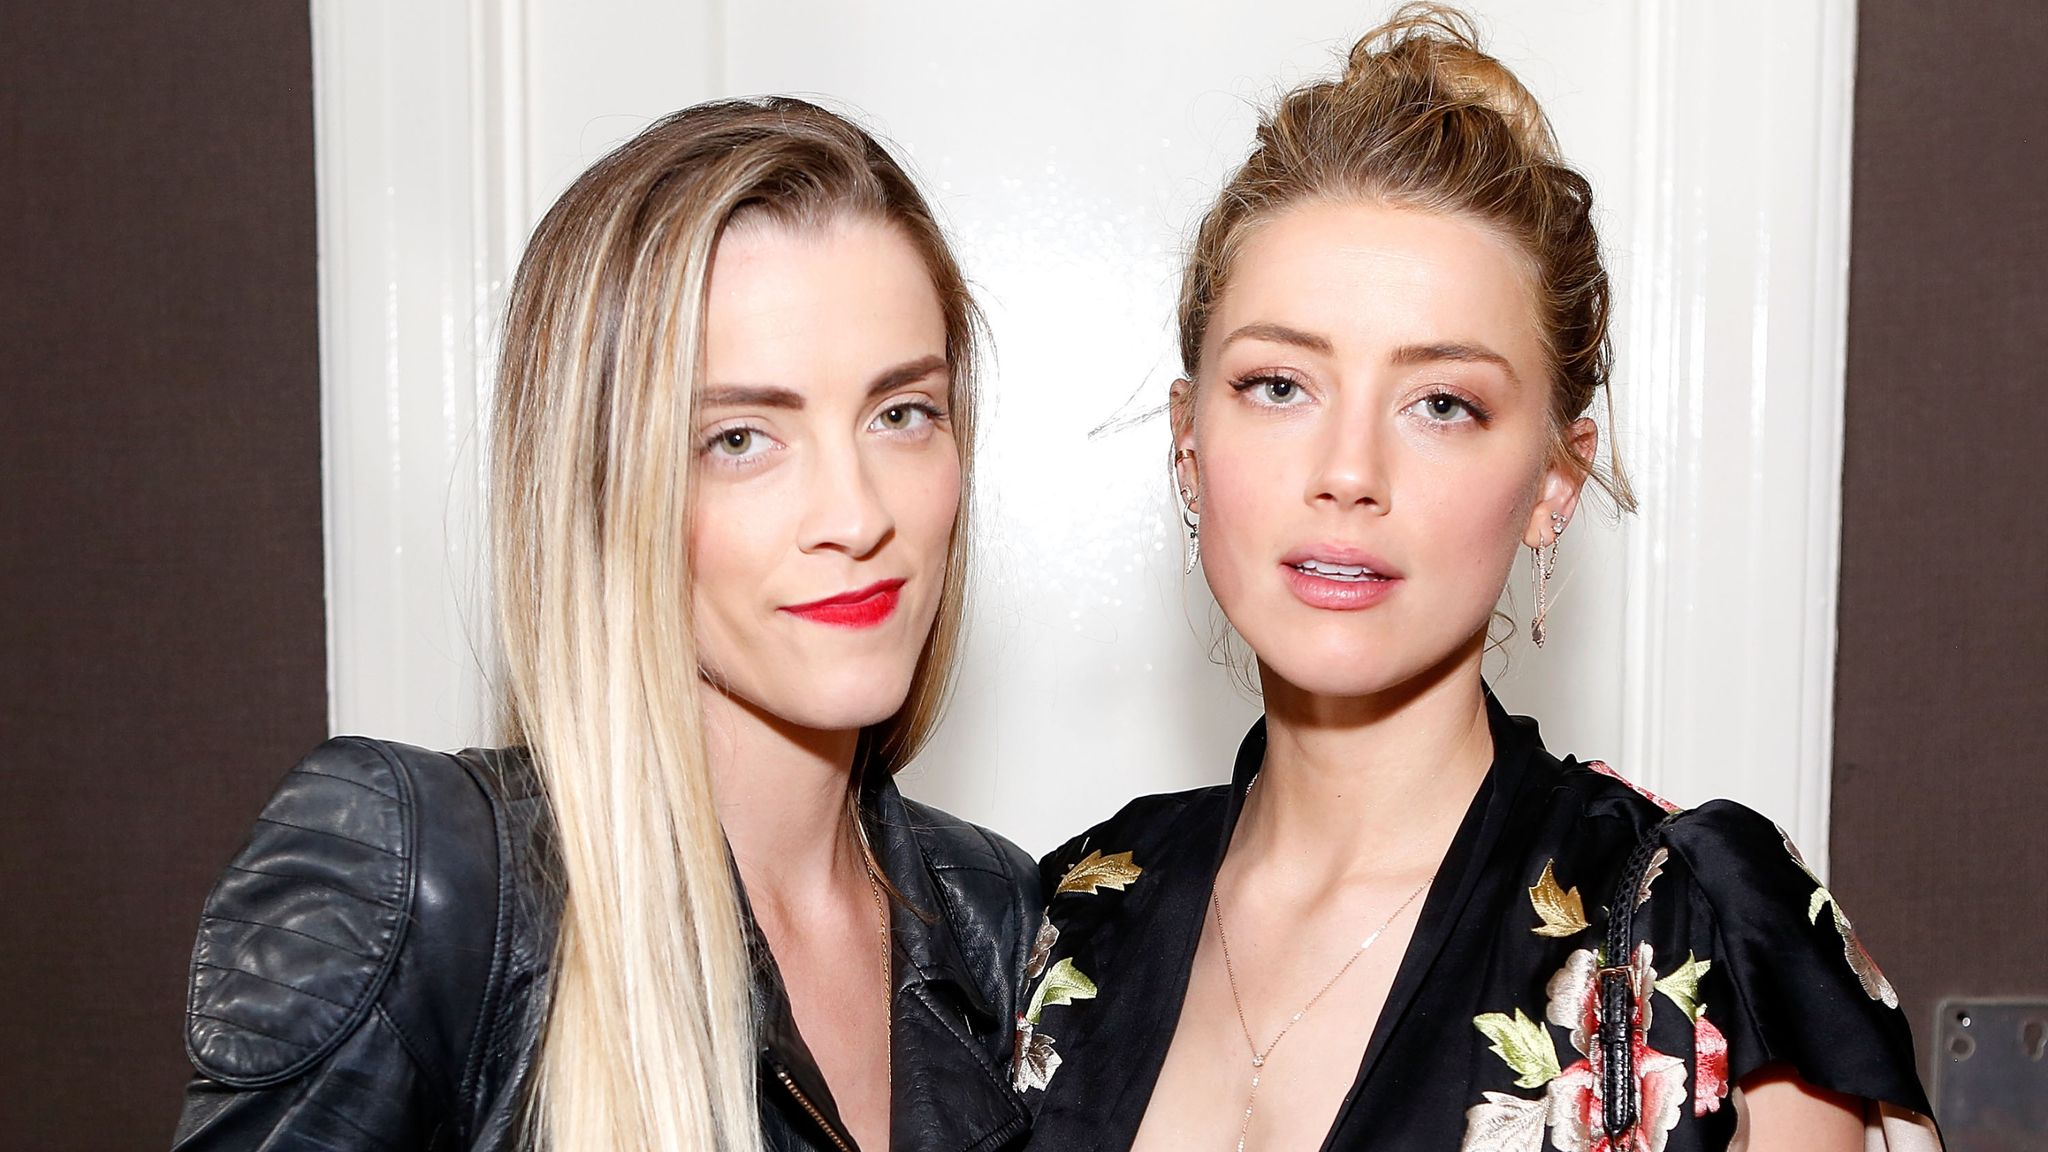 Johnny Depp Libel Trial Amber Heard S Sister Claims She Saw Actor Hit Her In The Head Ents Arts News Sky News